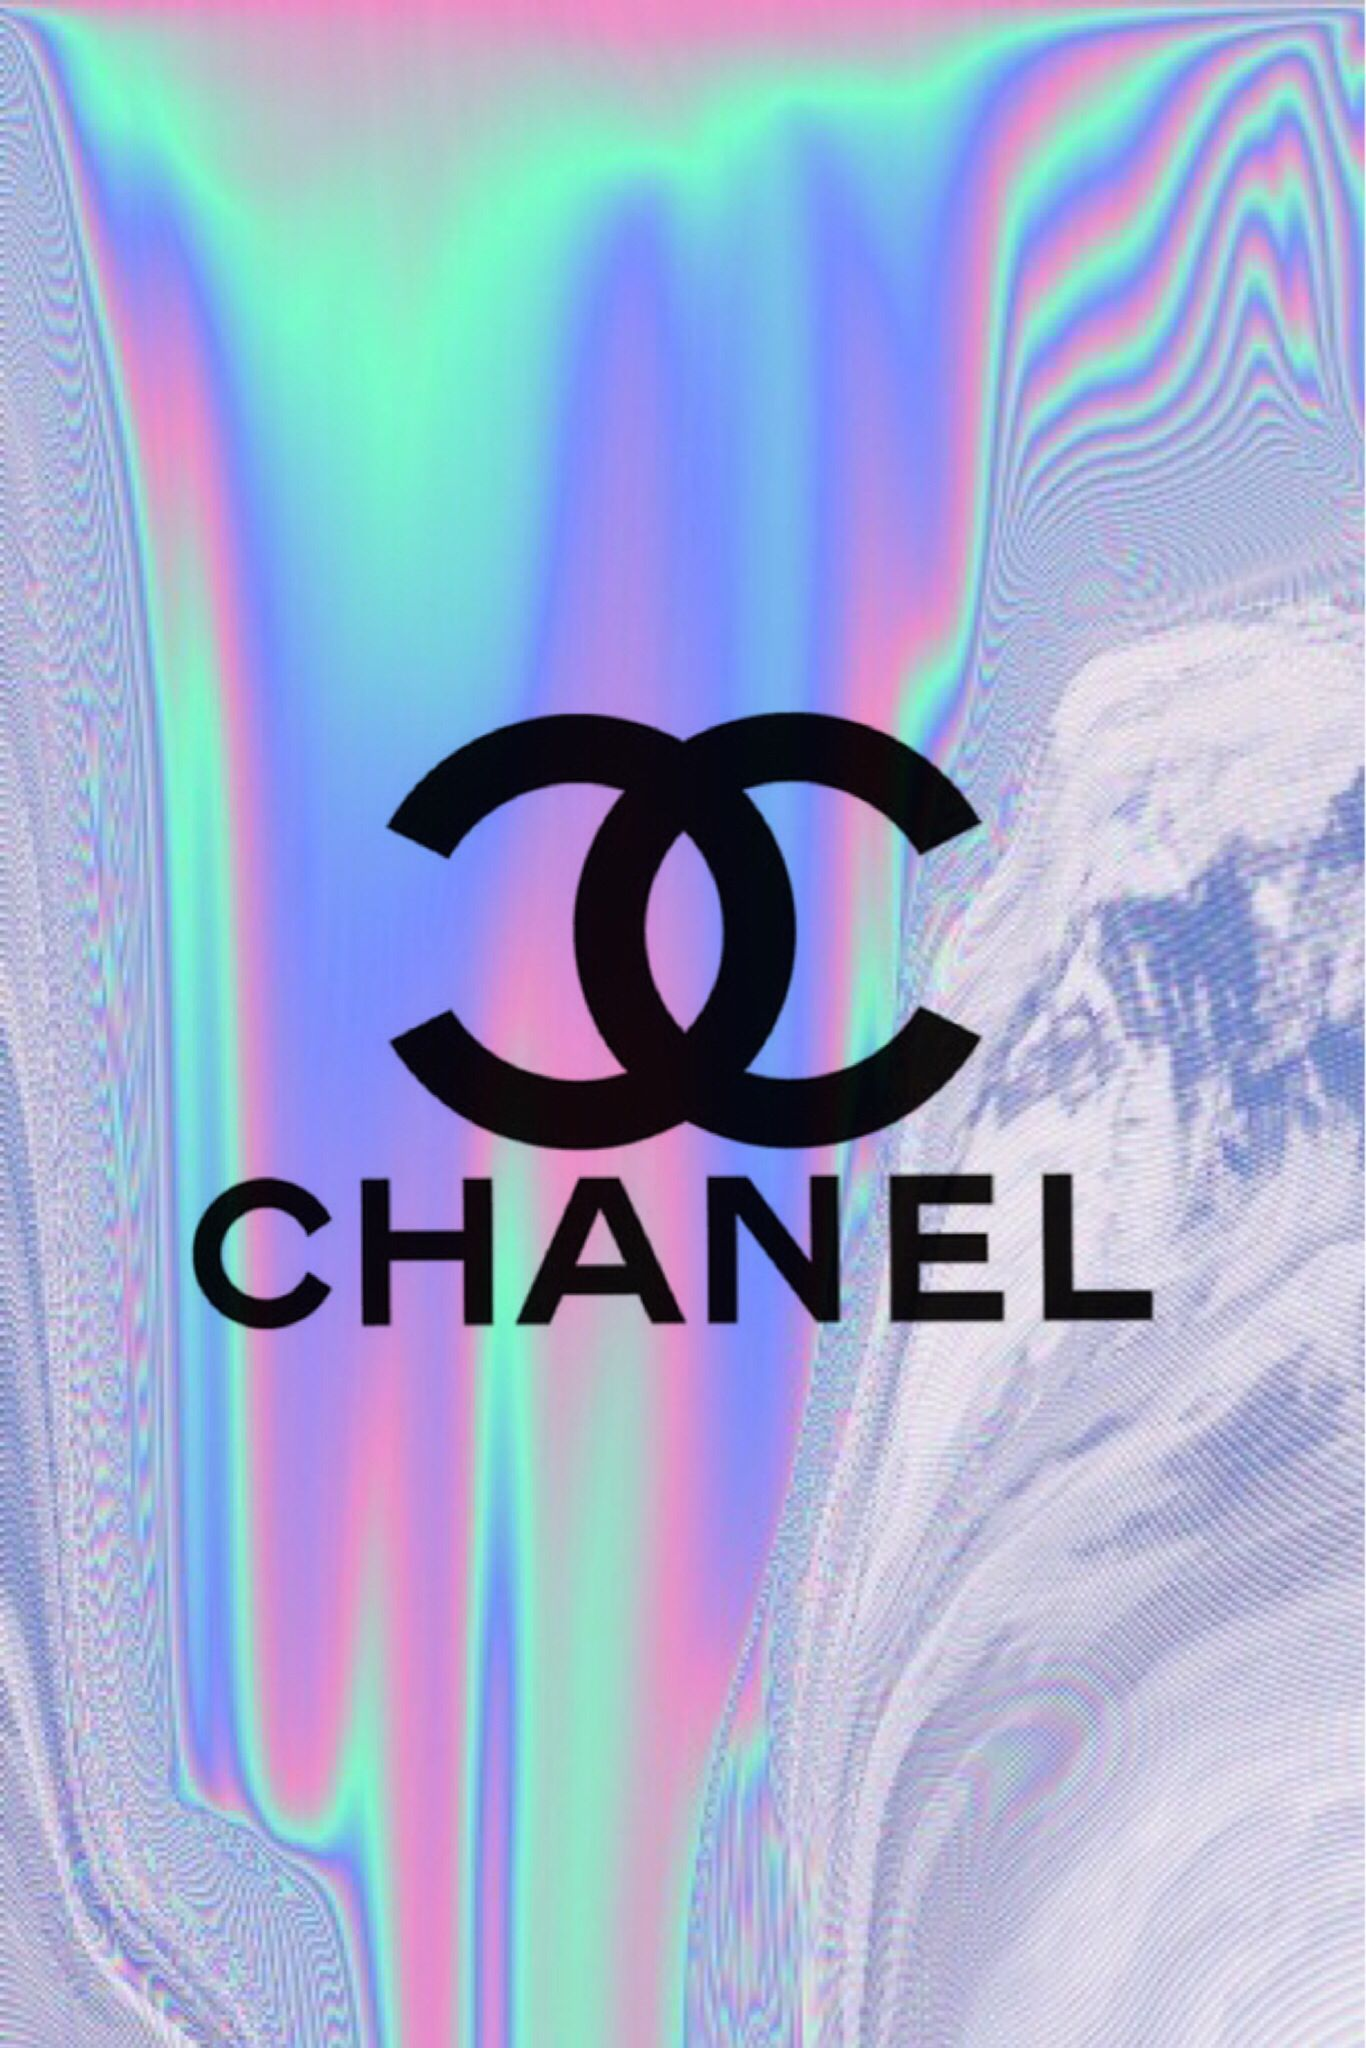 Chanel Wallpapers Top Free Chanel Backgrounds Wallpaperaccess Aesthetic channel logo (page 1). chanel wallpapers top free chanel